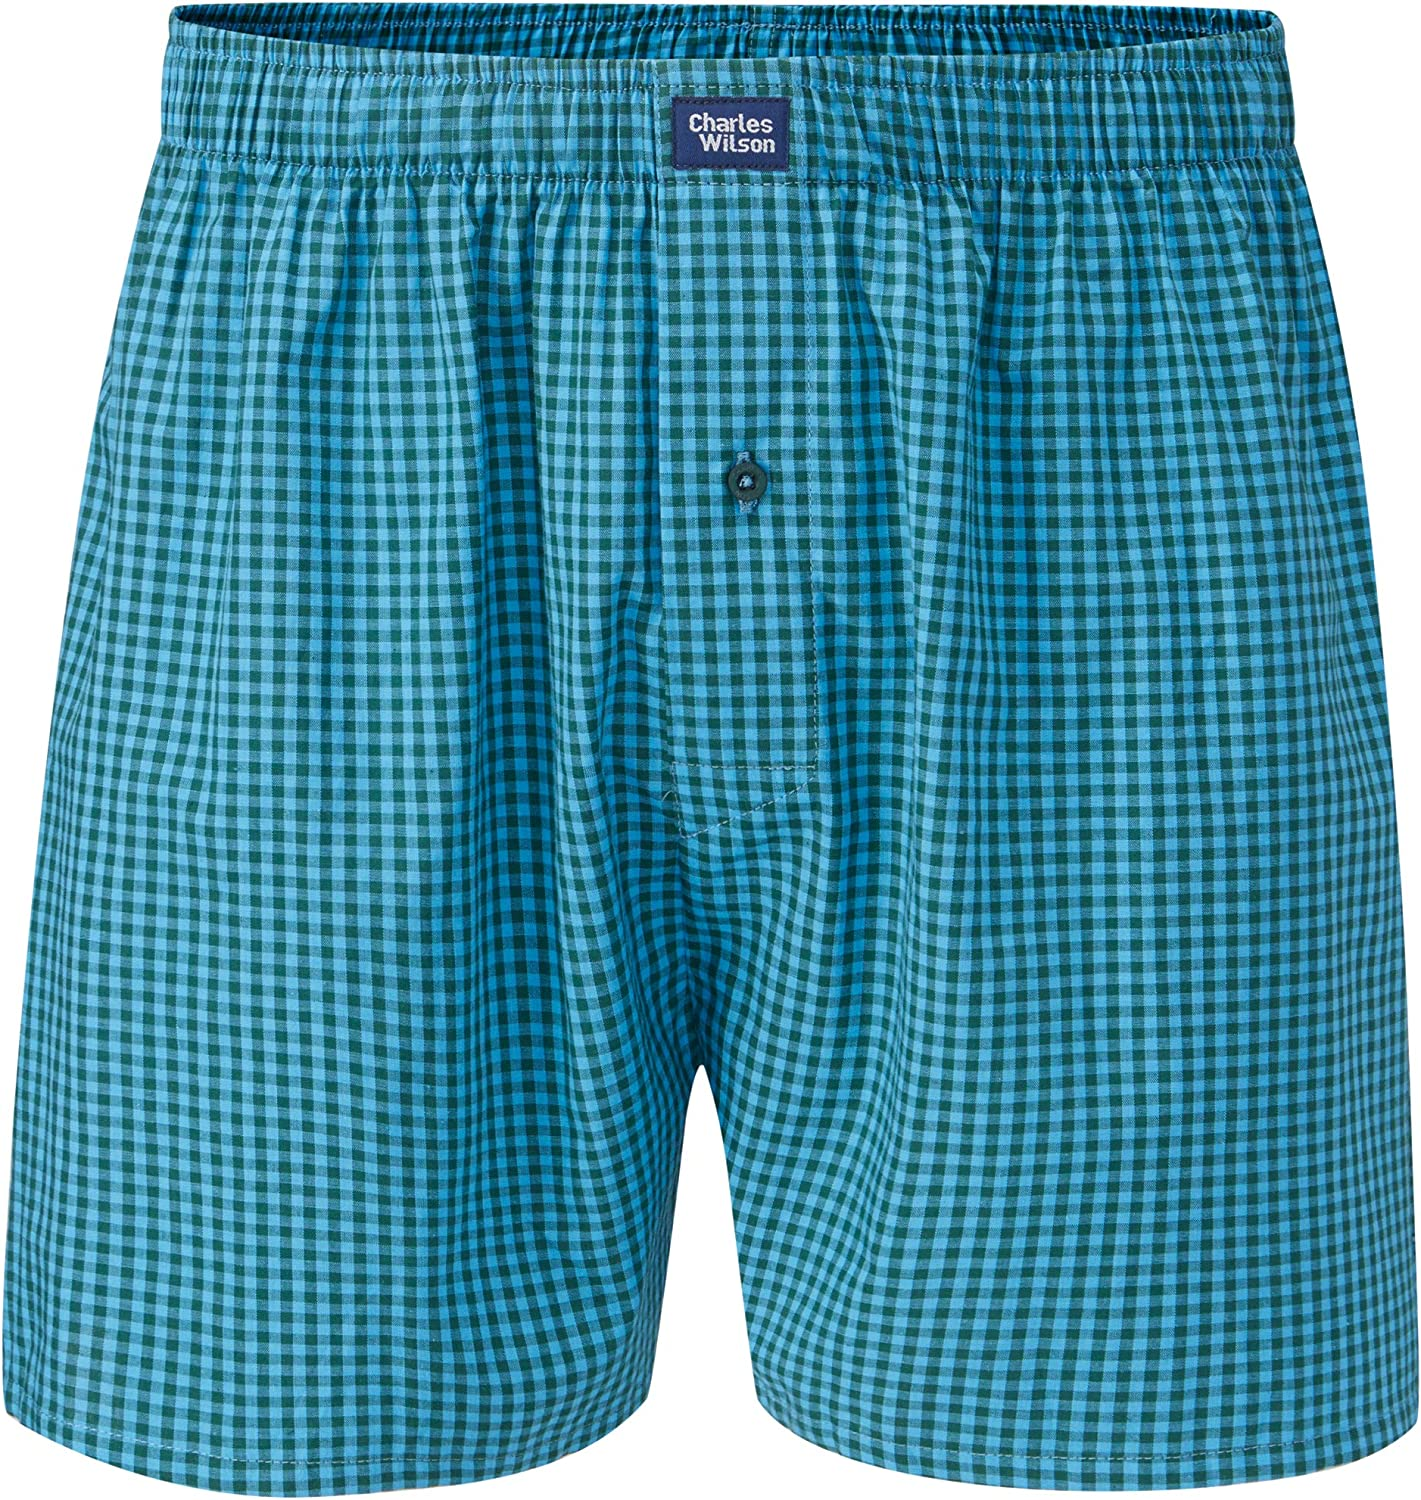 Charles Wilson 6 Pack Woven Boxer Shorts